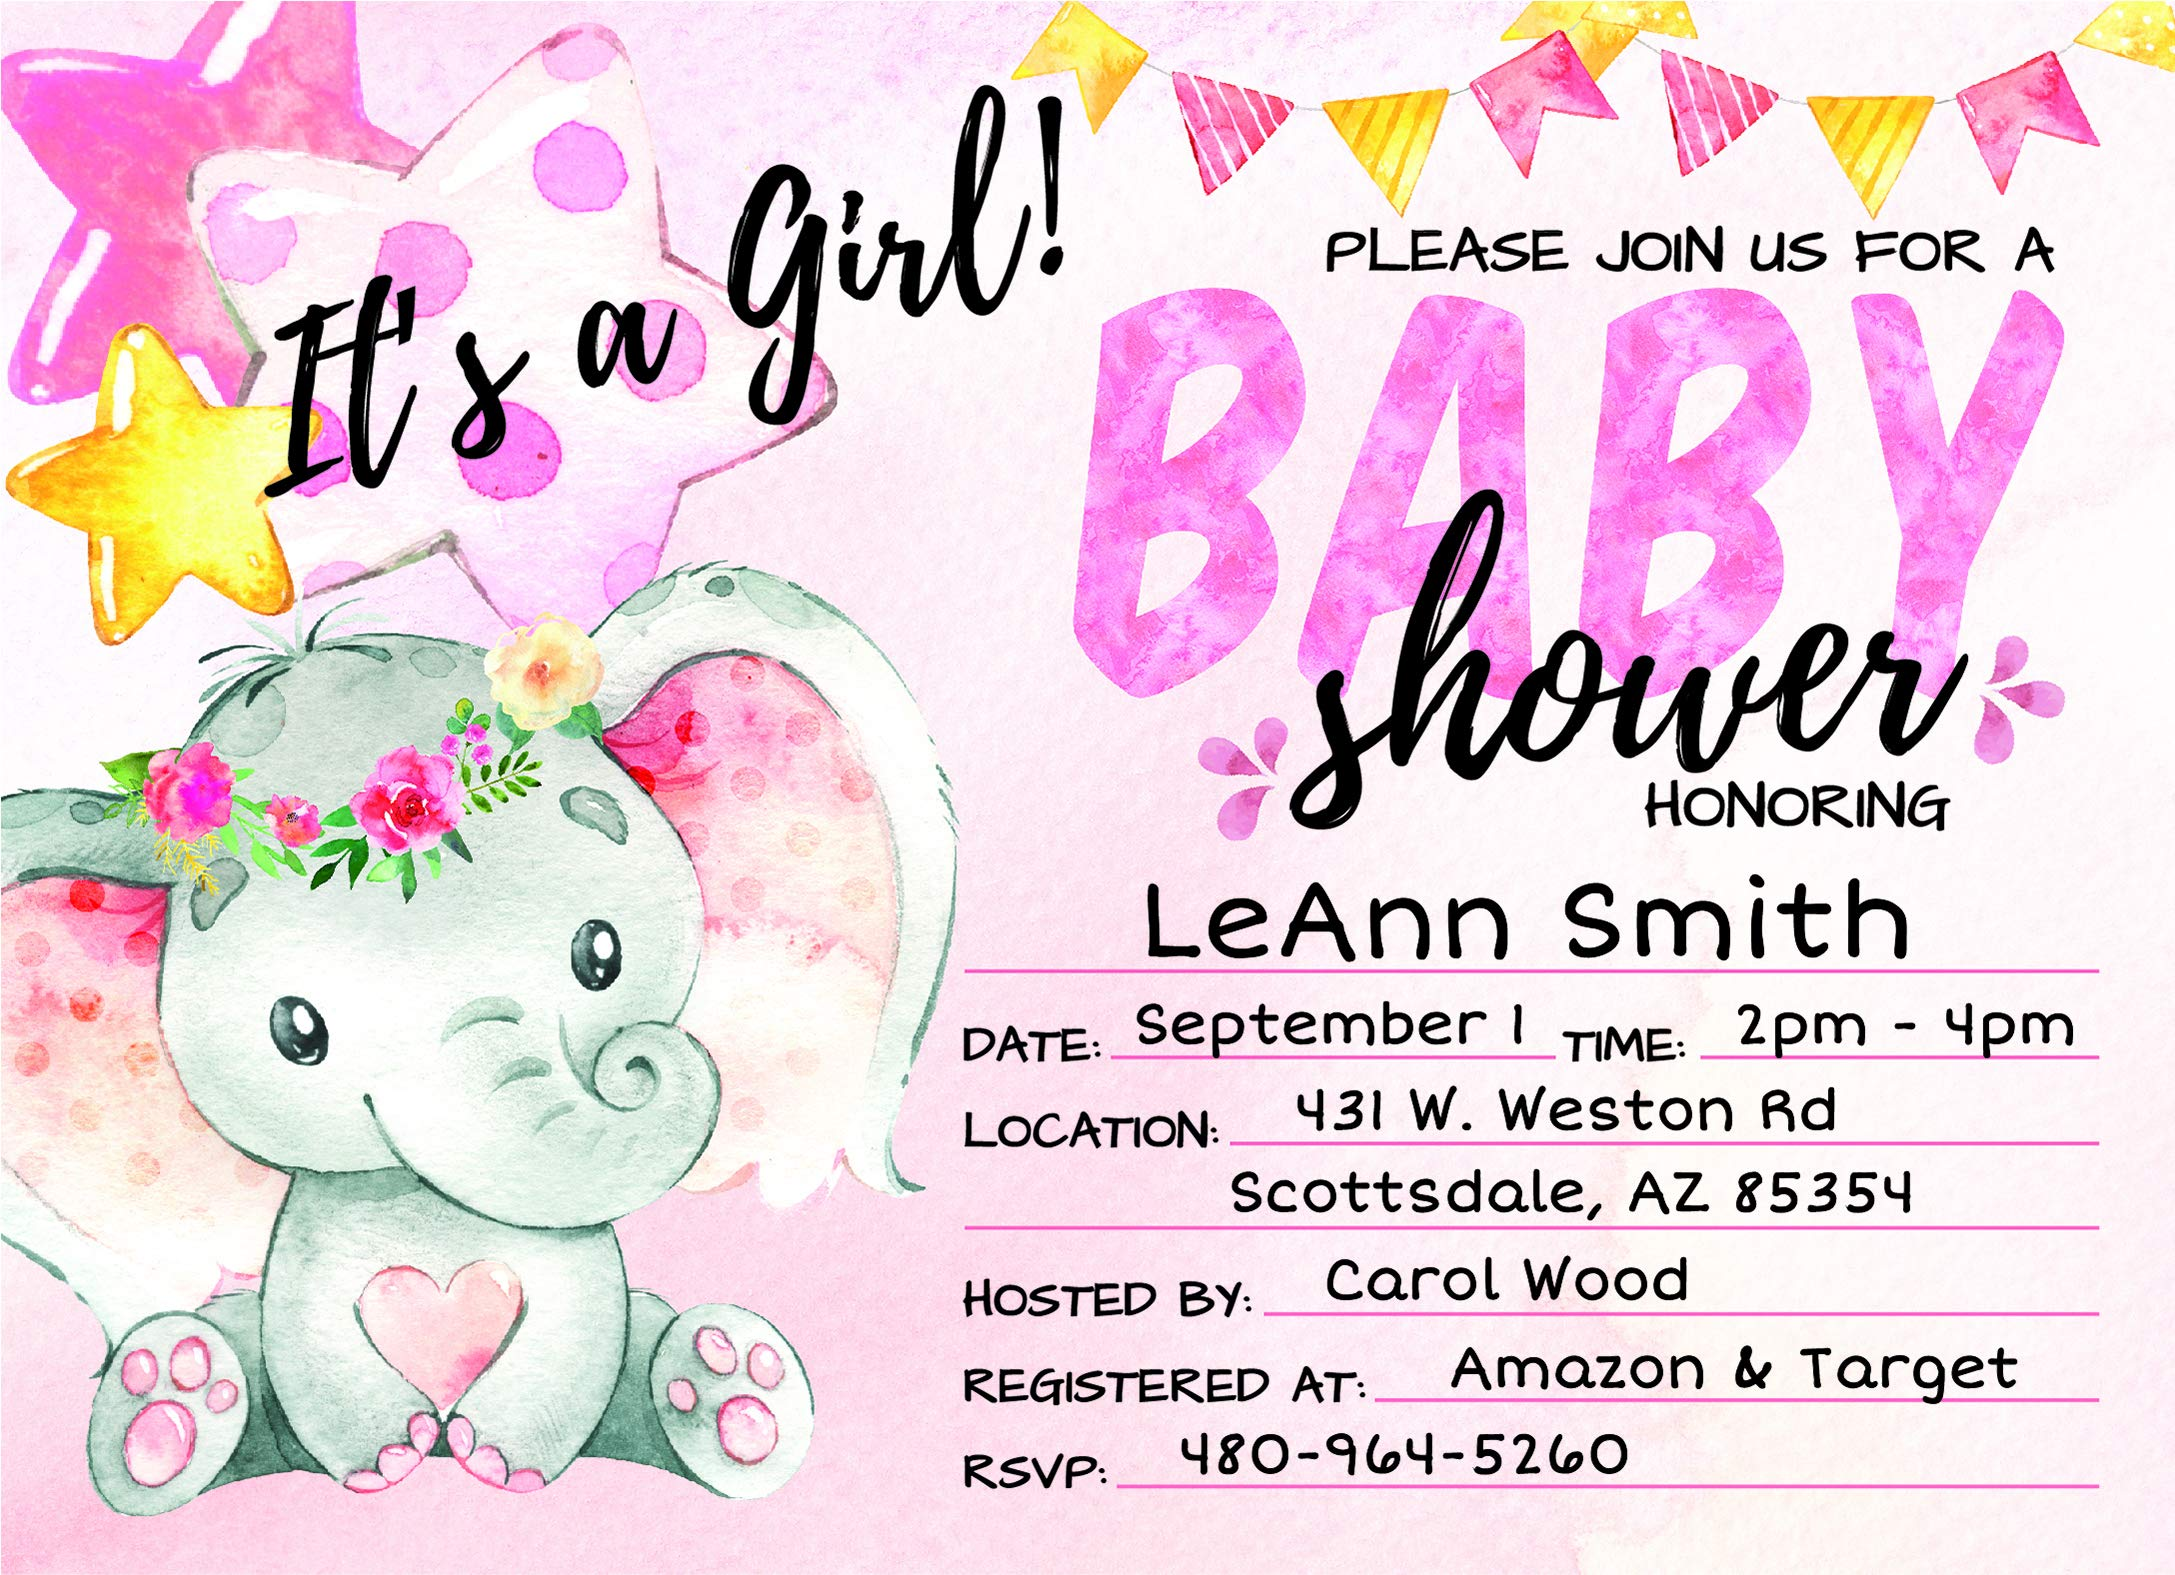 Deluxe Pink Elephant Baby Shower Invitations, Jungle, Tropical Safari Animals, Its A Girl Party Invites, Includes- 20 Each Large Double Sided 5 x 7 Invites, Raffle Tickets, and Book Request Inserts by Pink Pixie Studio (Image #2)